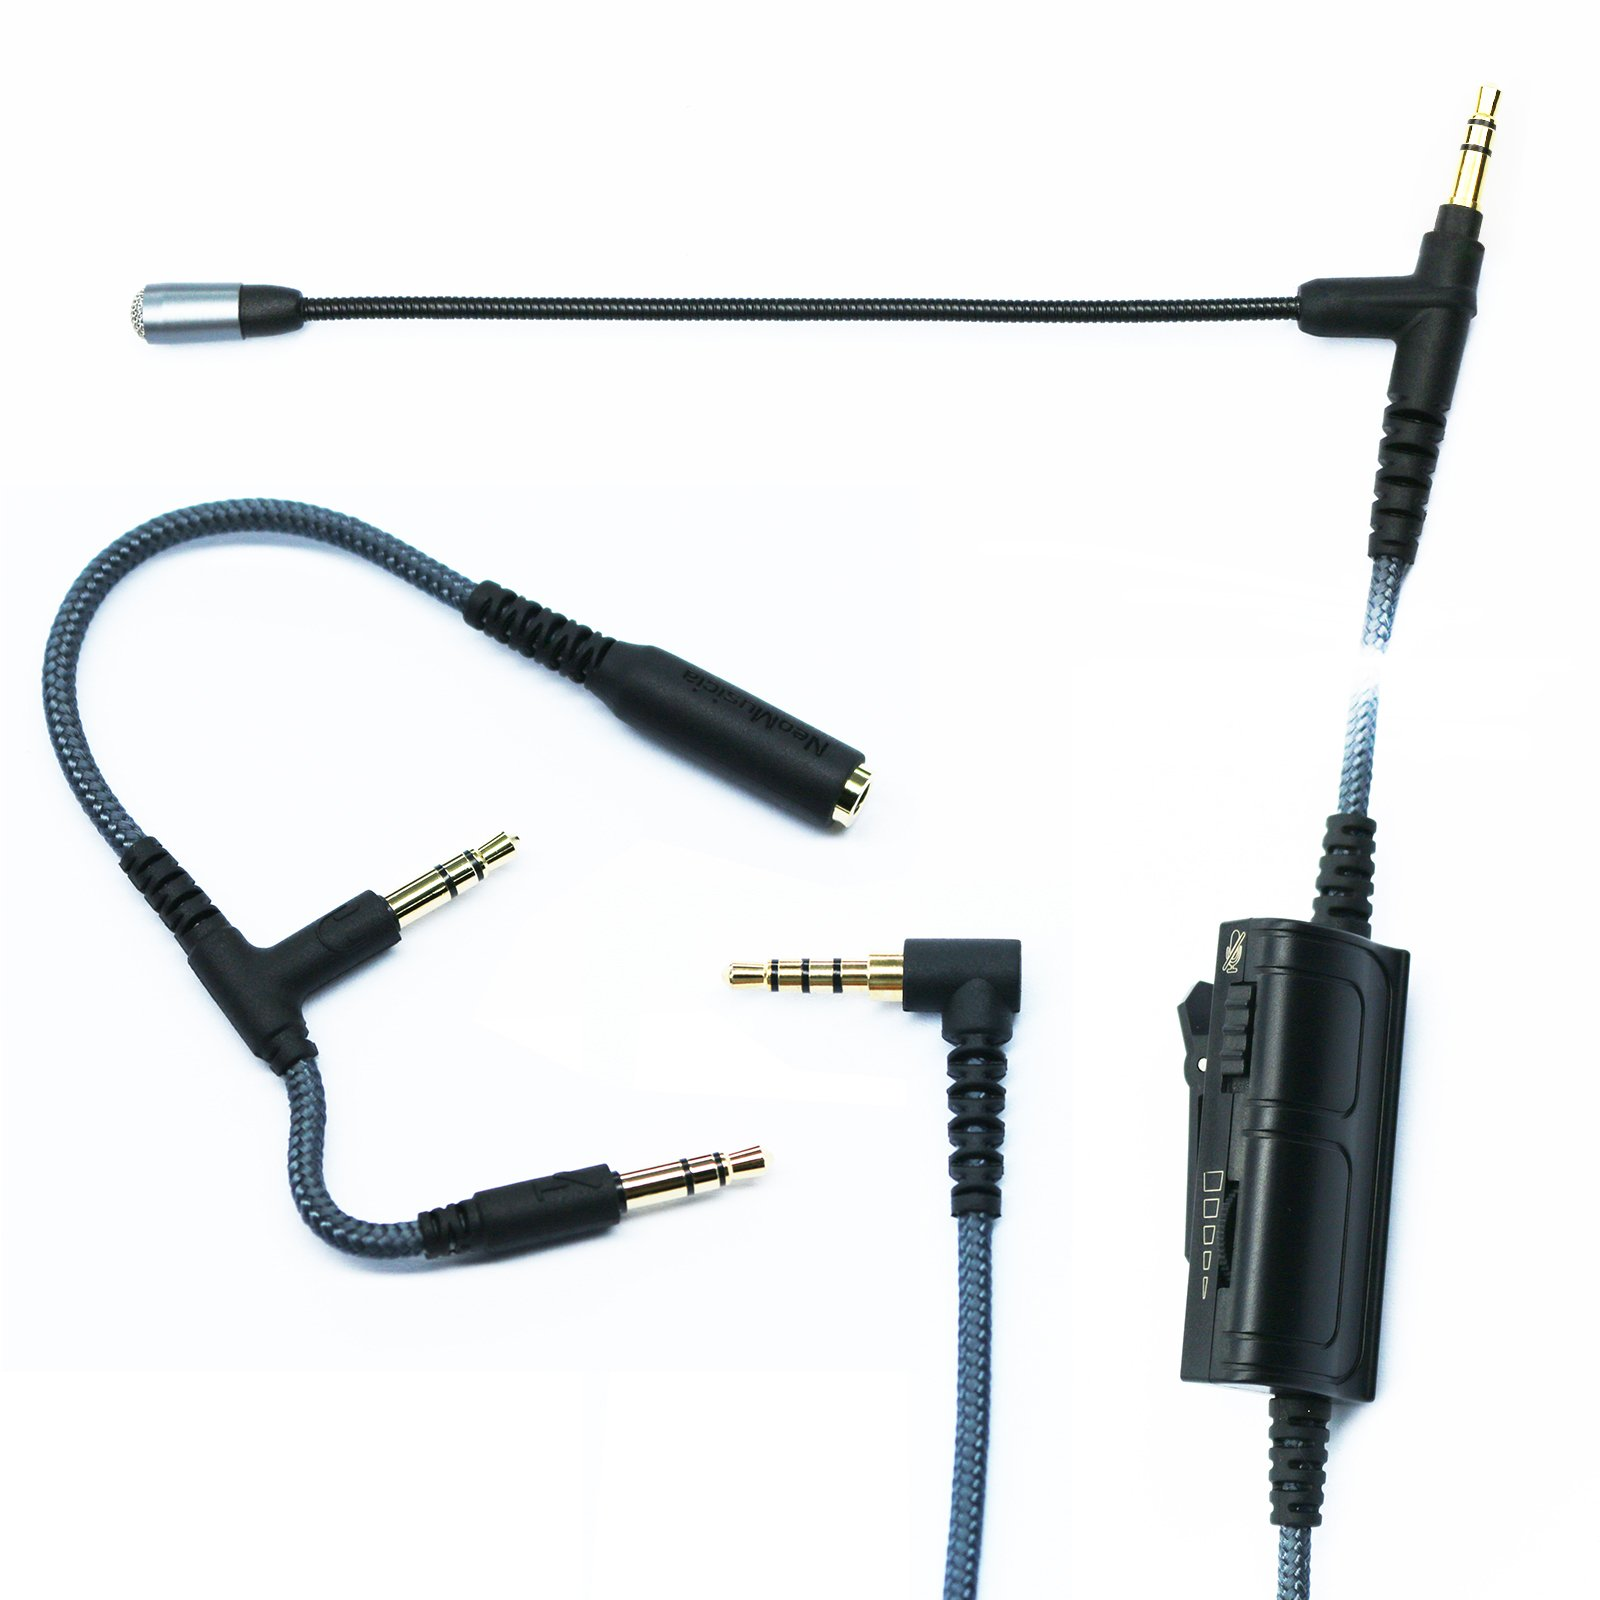 NewFantasia Cable Boom Microphone Volume for gaming PS4 Xbox One PC Laptop iphone Android phone to SONY MDRXB950BT, MDRXB650BT, MDR1000X, MDR100ABN, WH1000XM2, MDR-1RBT, MDR-10RBT, MDR-1A headphone 2m